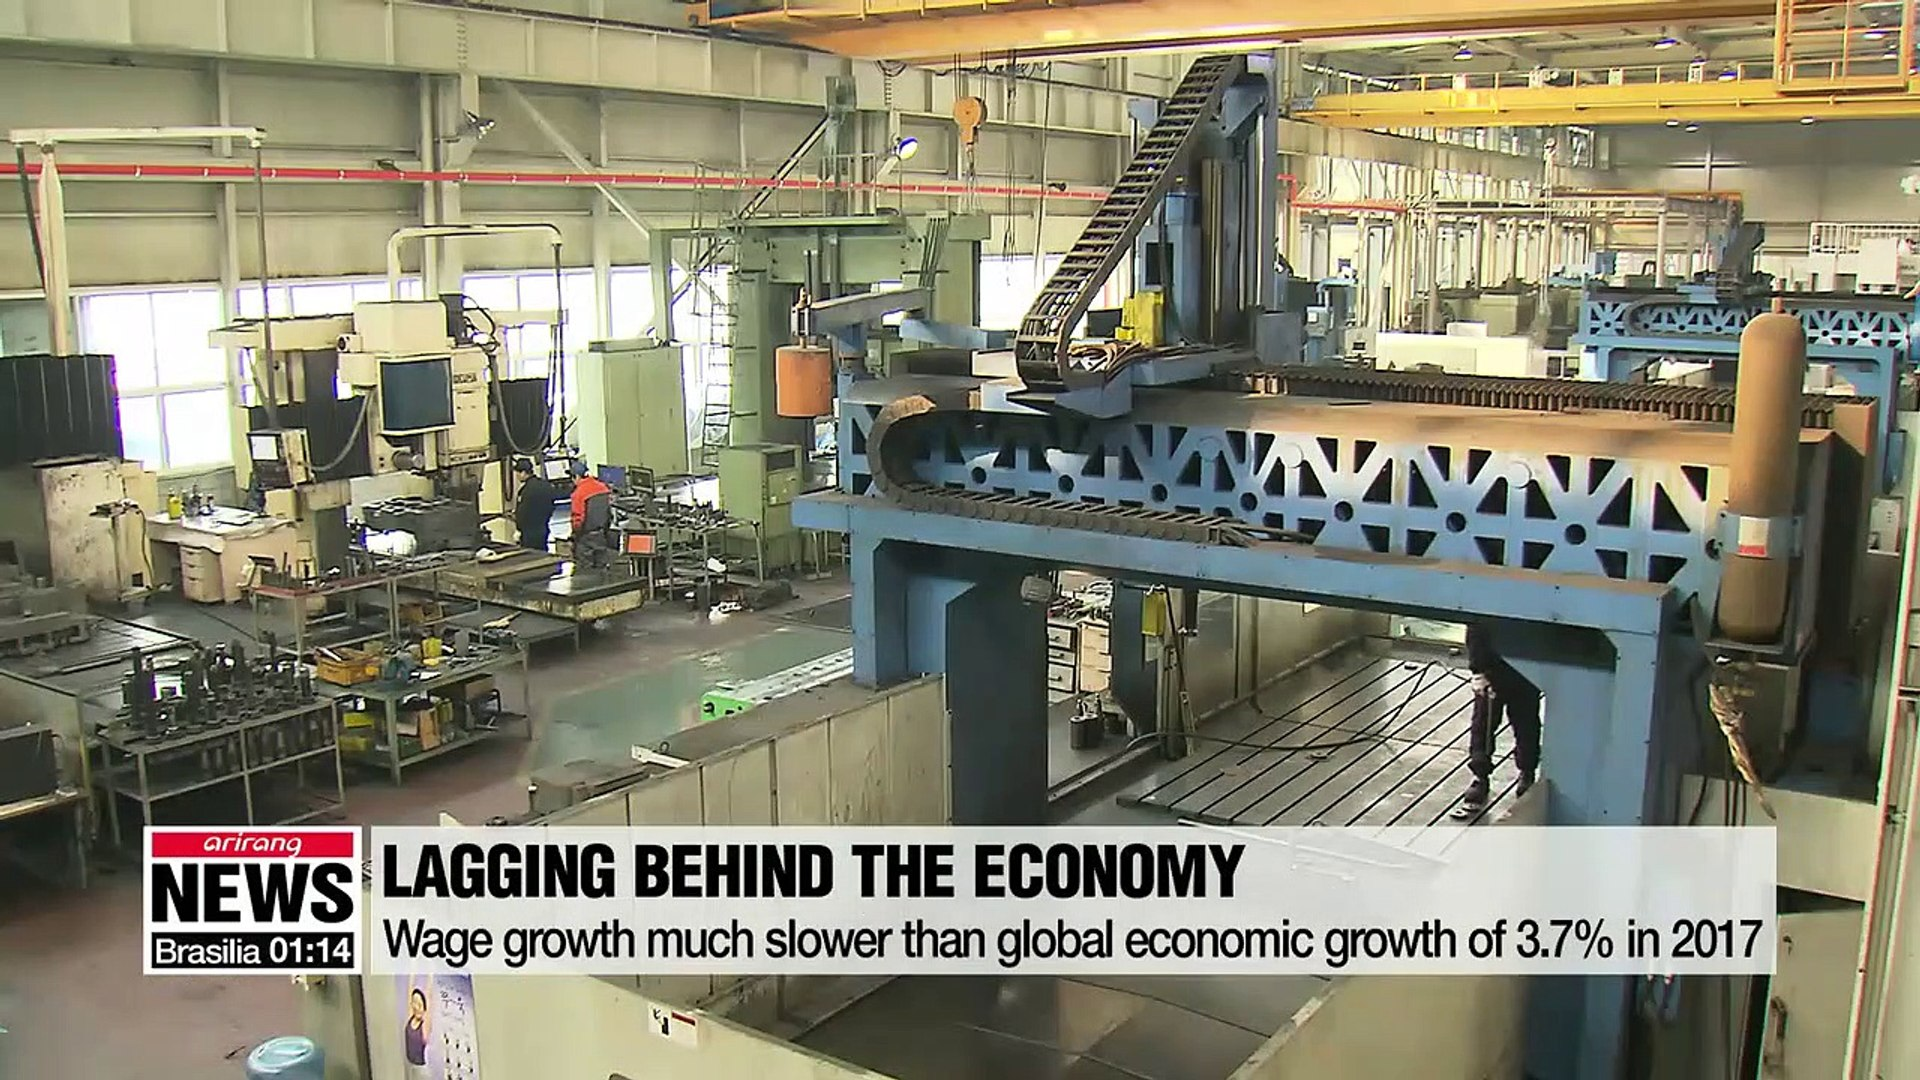 ILO Global Wage Report shows the lowest wage growth of 1.8% last year